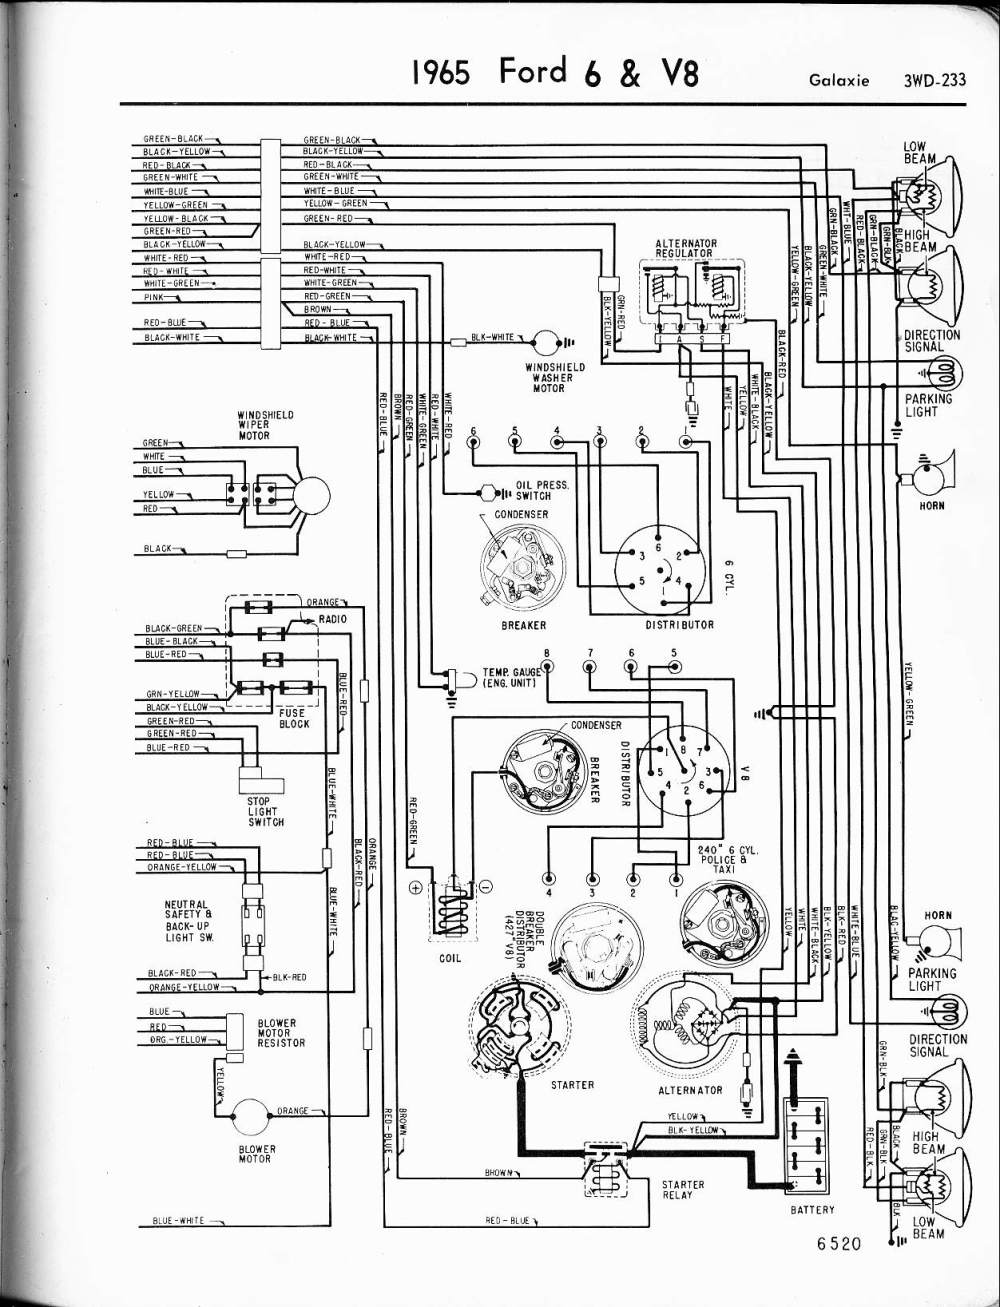 medium resolution of ignition circuit diagram of 1958 ford cars wiring diagram today57 65 ford wiring diagrams 1965 6